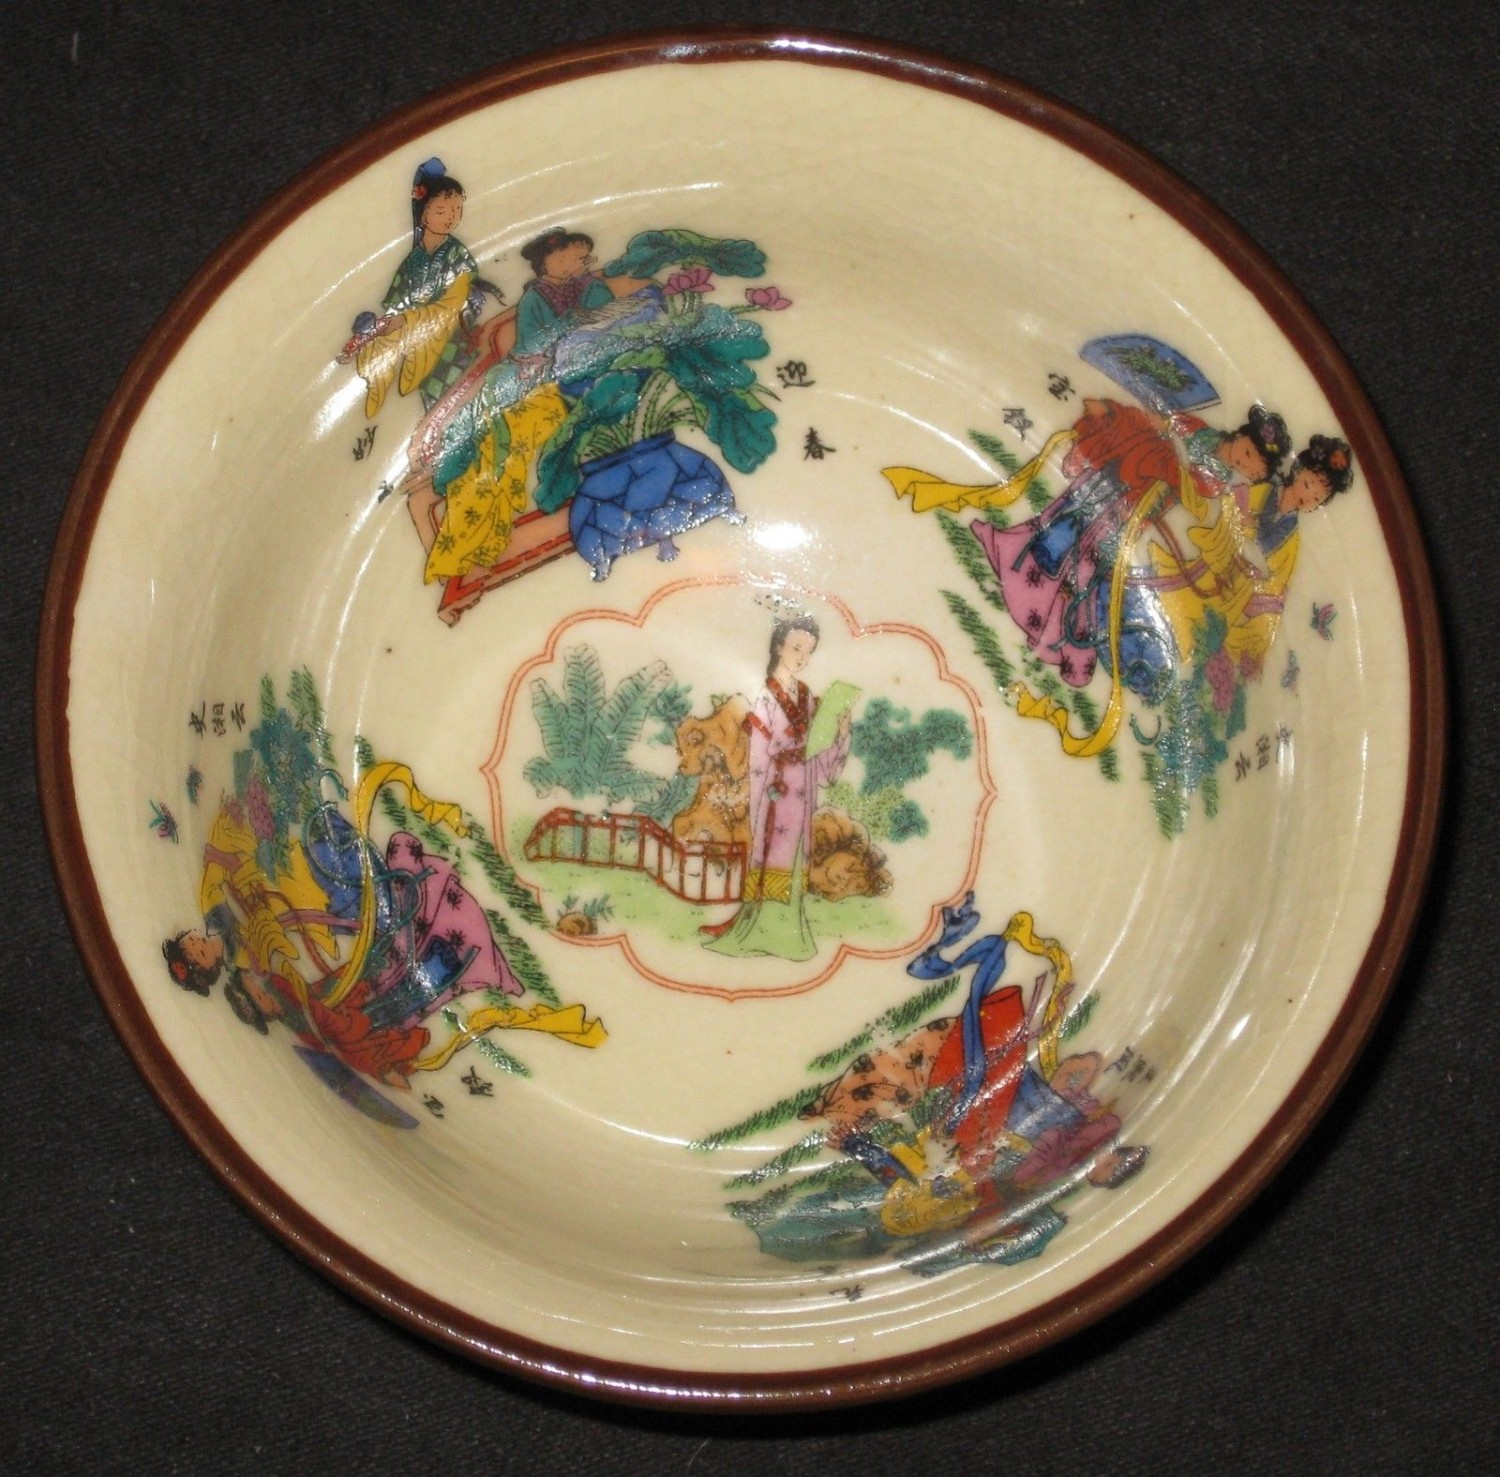 ANTIQUE CHINESE PORCELAIN HAND PAINTED BOWL, 19TH CENTURY - QIANLONG MARK.